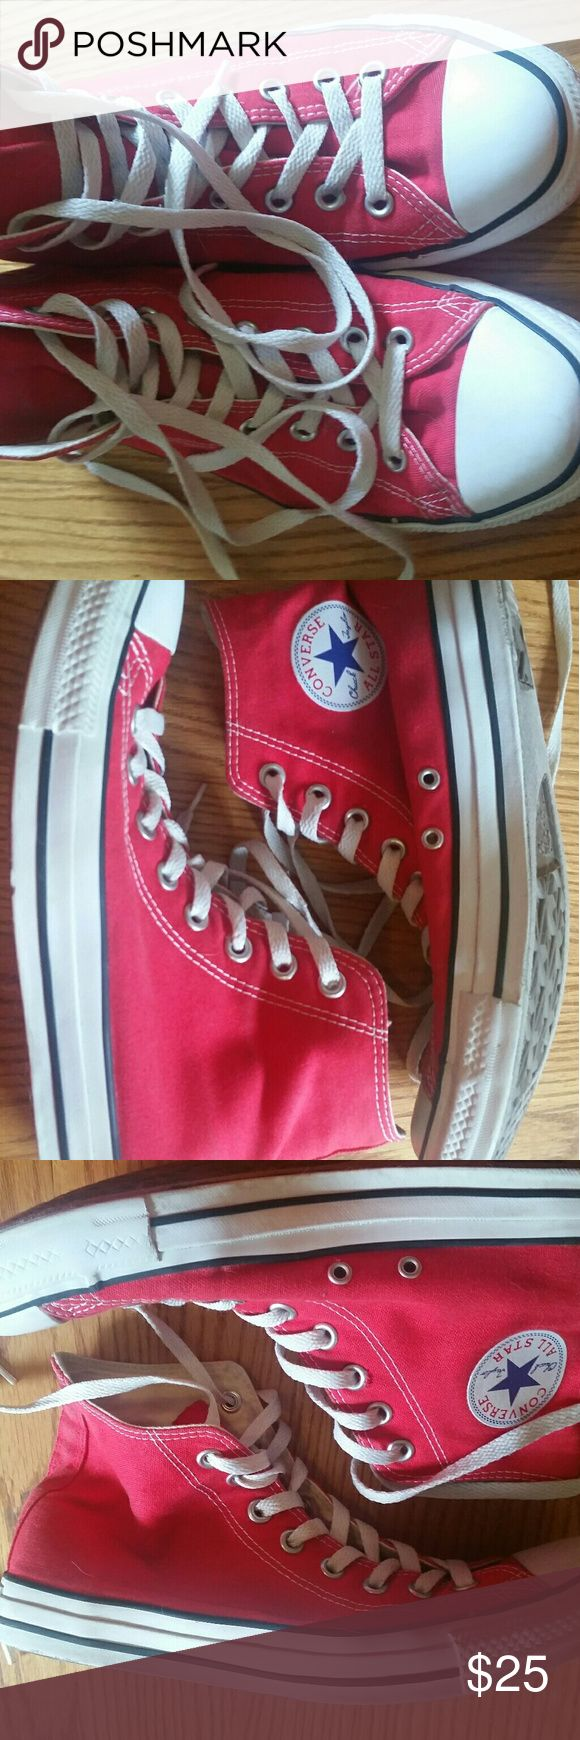 Red converse Hightops In used but great condition. Clean material, laces are not bad and no major scuffs. Men's size 9 women's size 11.  2 different pairs listed in my closet same shoe and size. Converse Shoes Sneakers